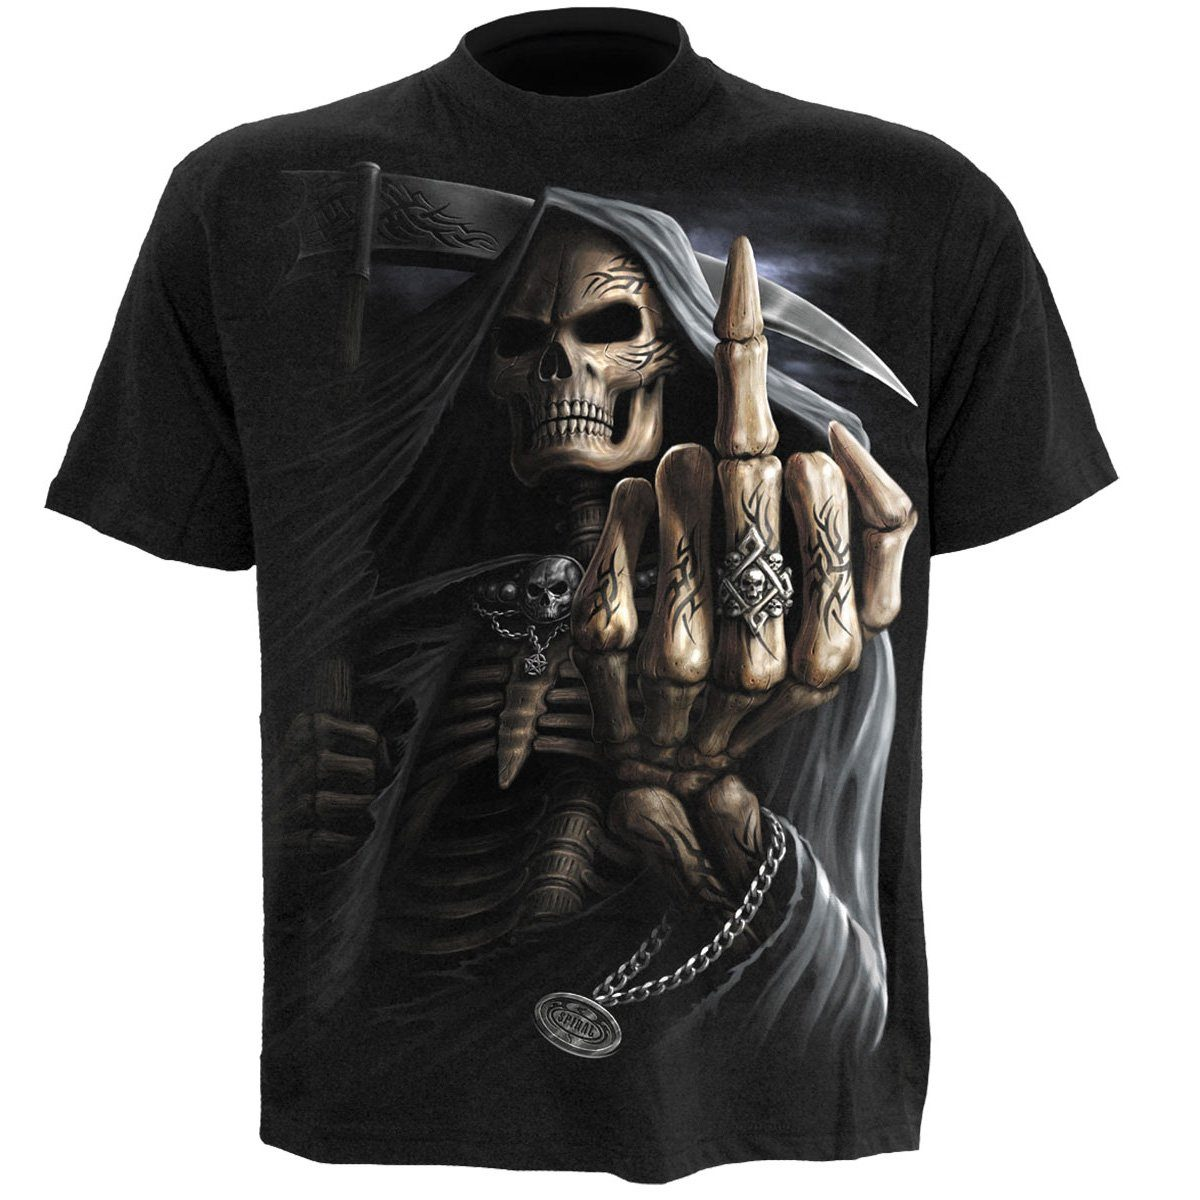 Defiant Grim Reaper Men's Black T-Shirt